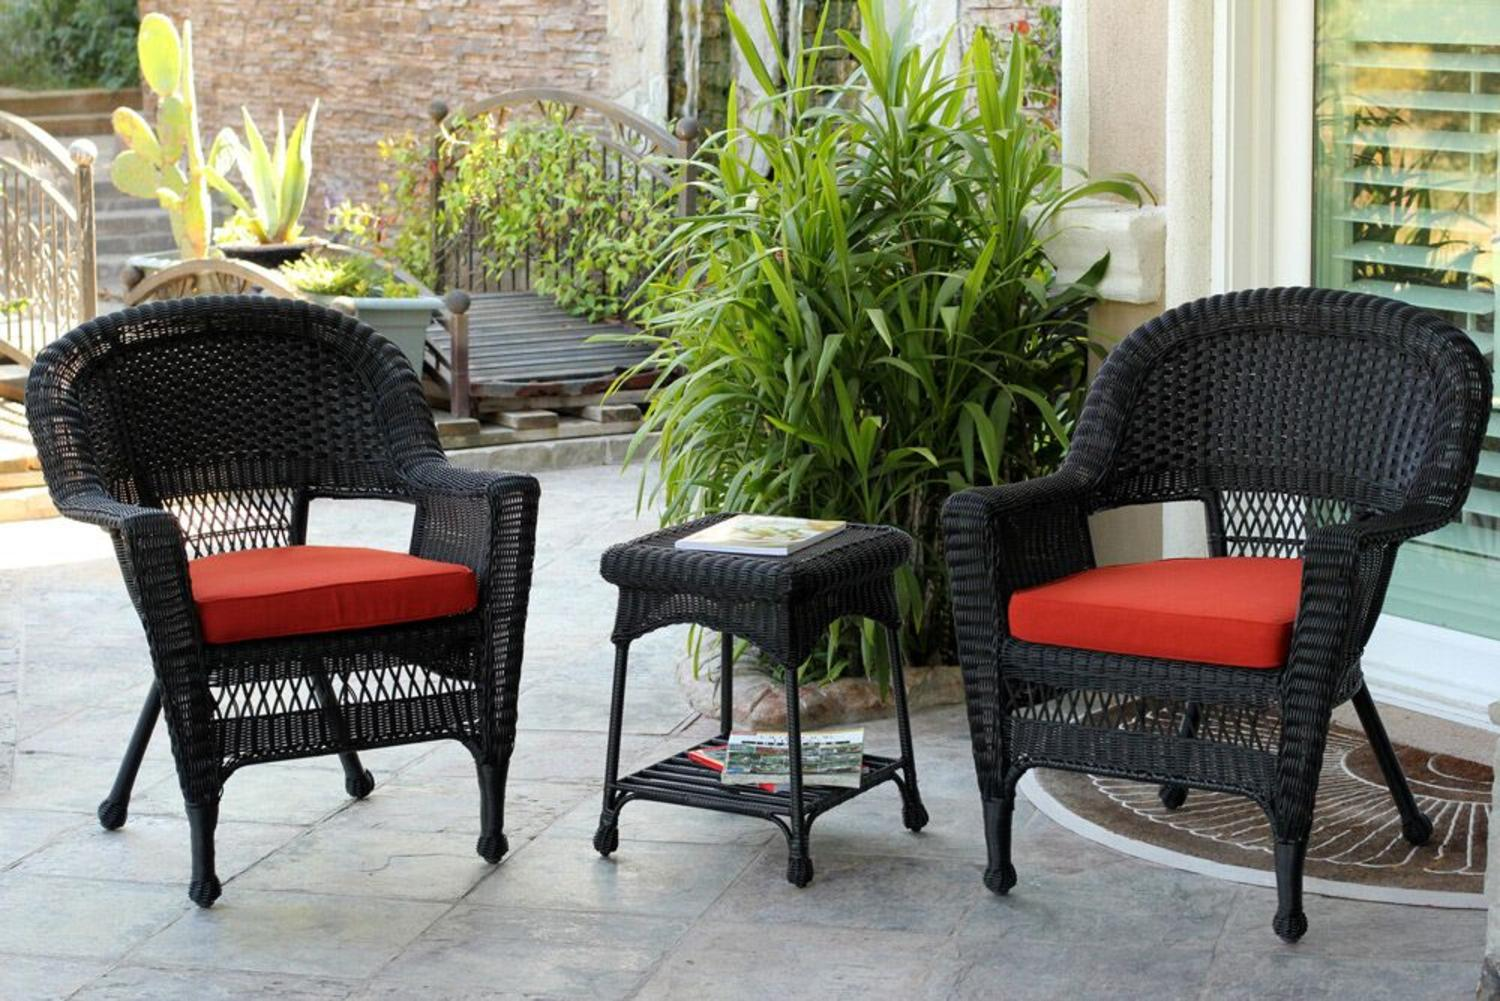 Red Patio Chairs 3 Piece Black Resin Wicker Patio Chairs And End Table Furniture Set Red Cushions